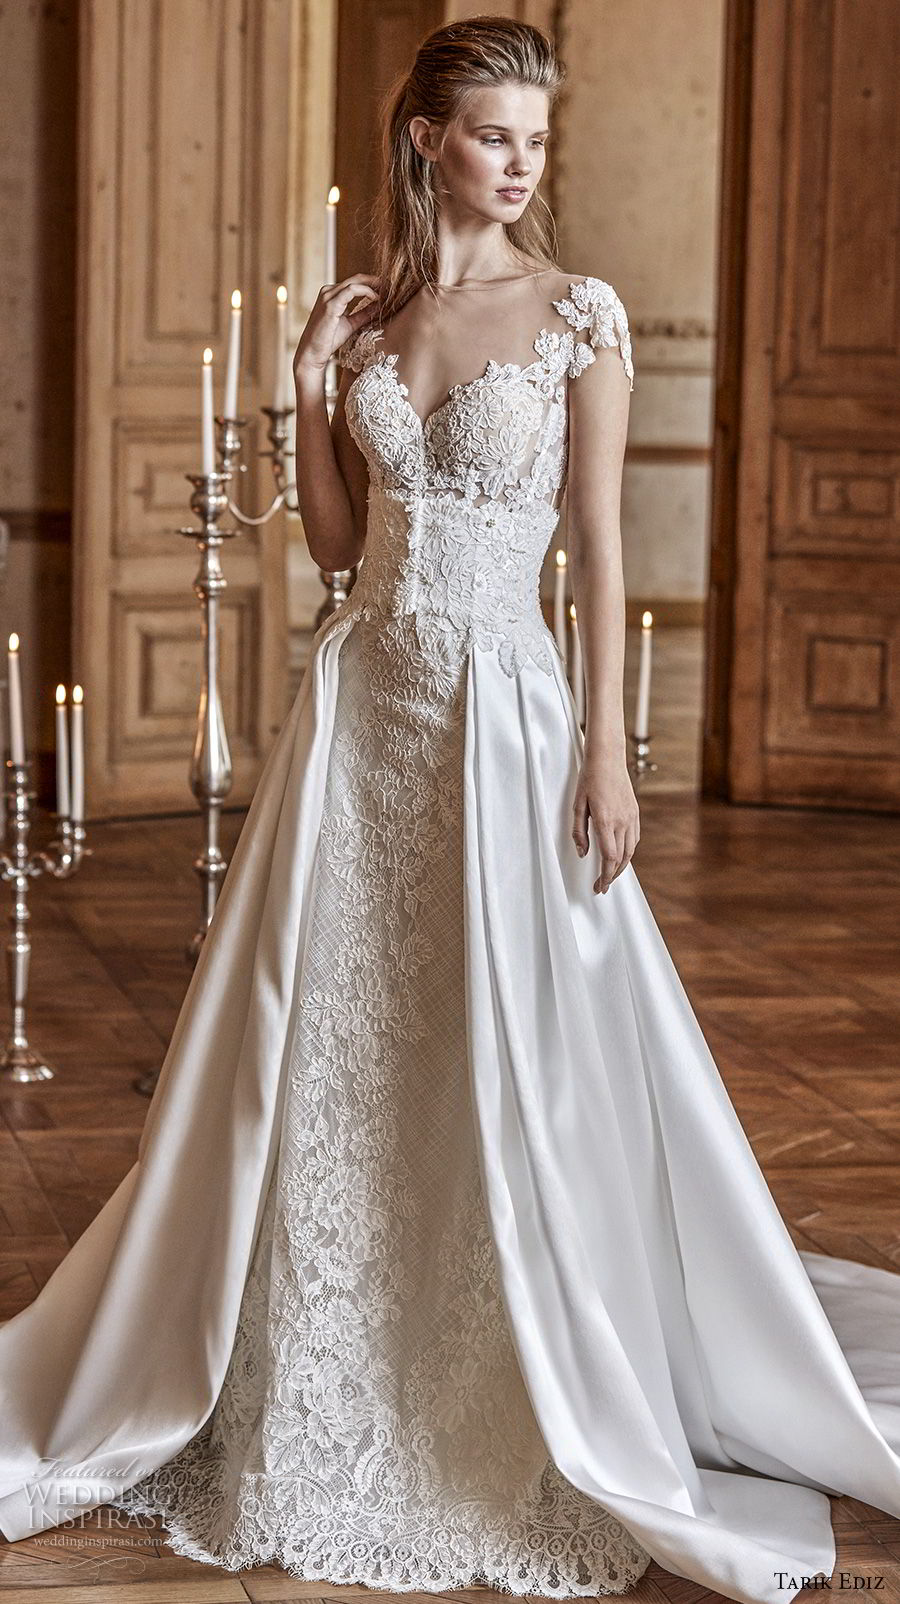 tarik ediz 2017 bridal cap sleeves illusion bateau sweetheart neckline full embellishment elegant a line wedding dress sheer button back chapel train (30) mv